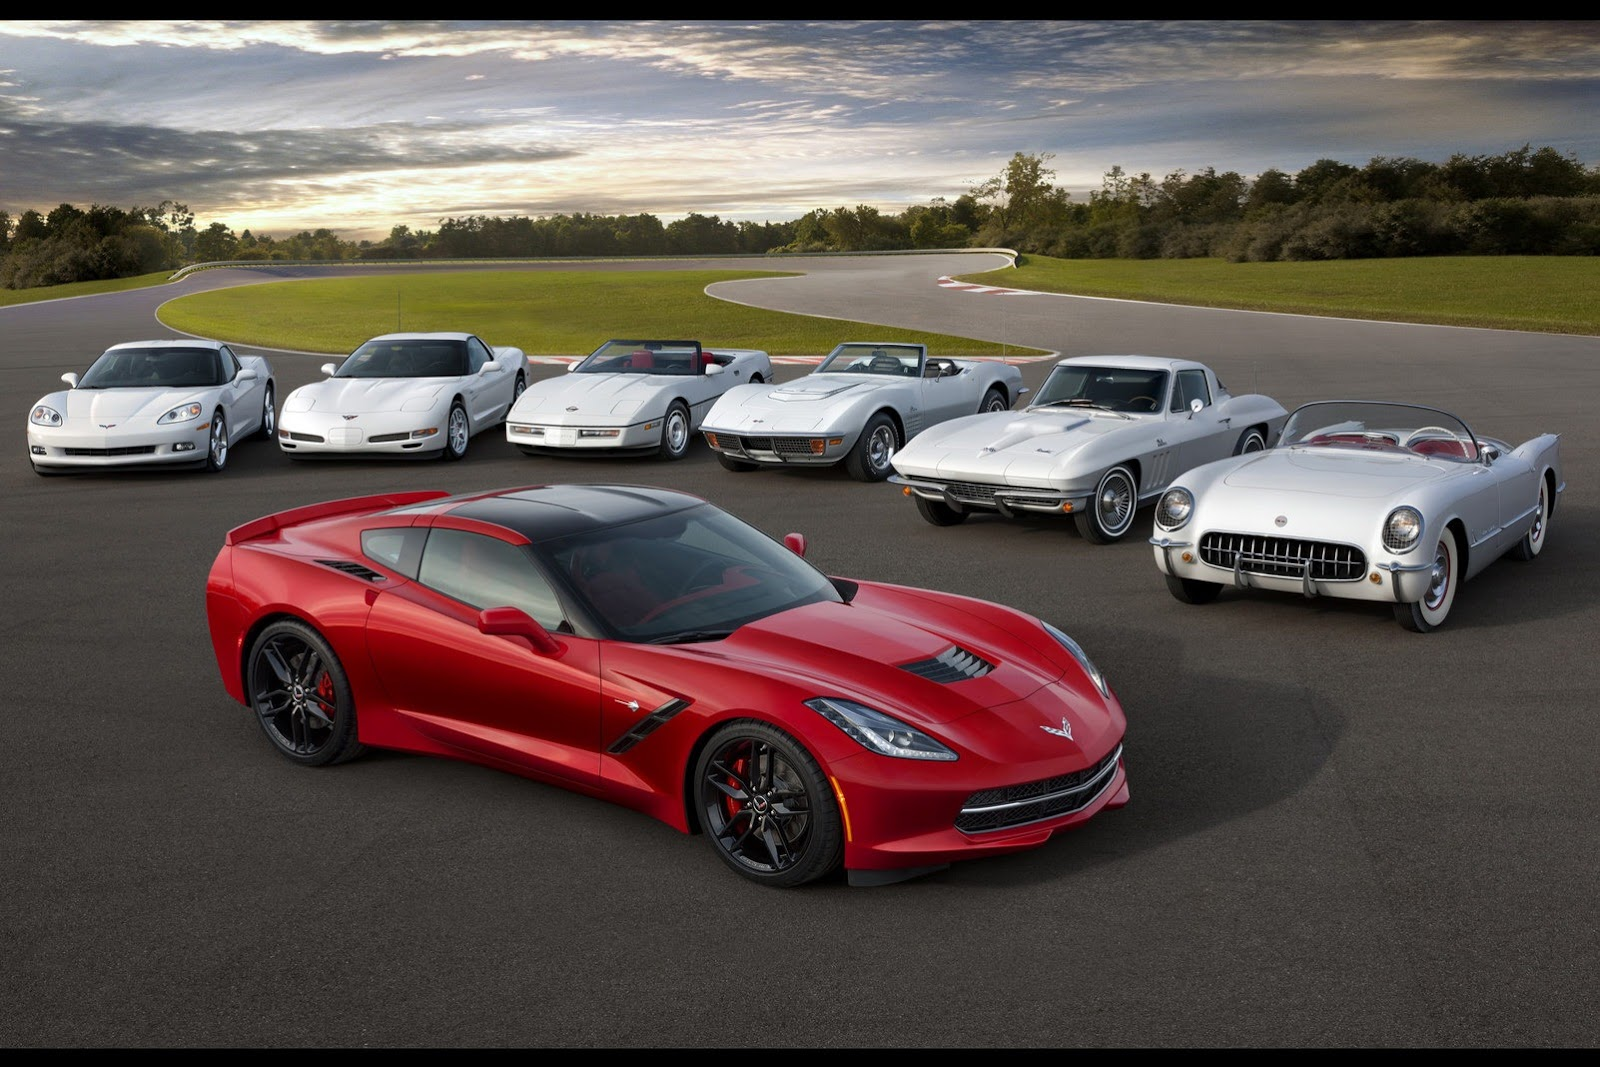 The 2014 Chevrolet C7 Corvette Stingray is Debuted at 2013 NAIAS